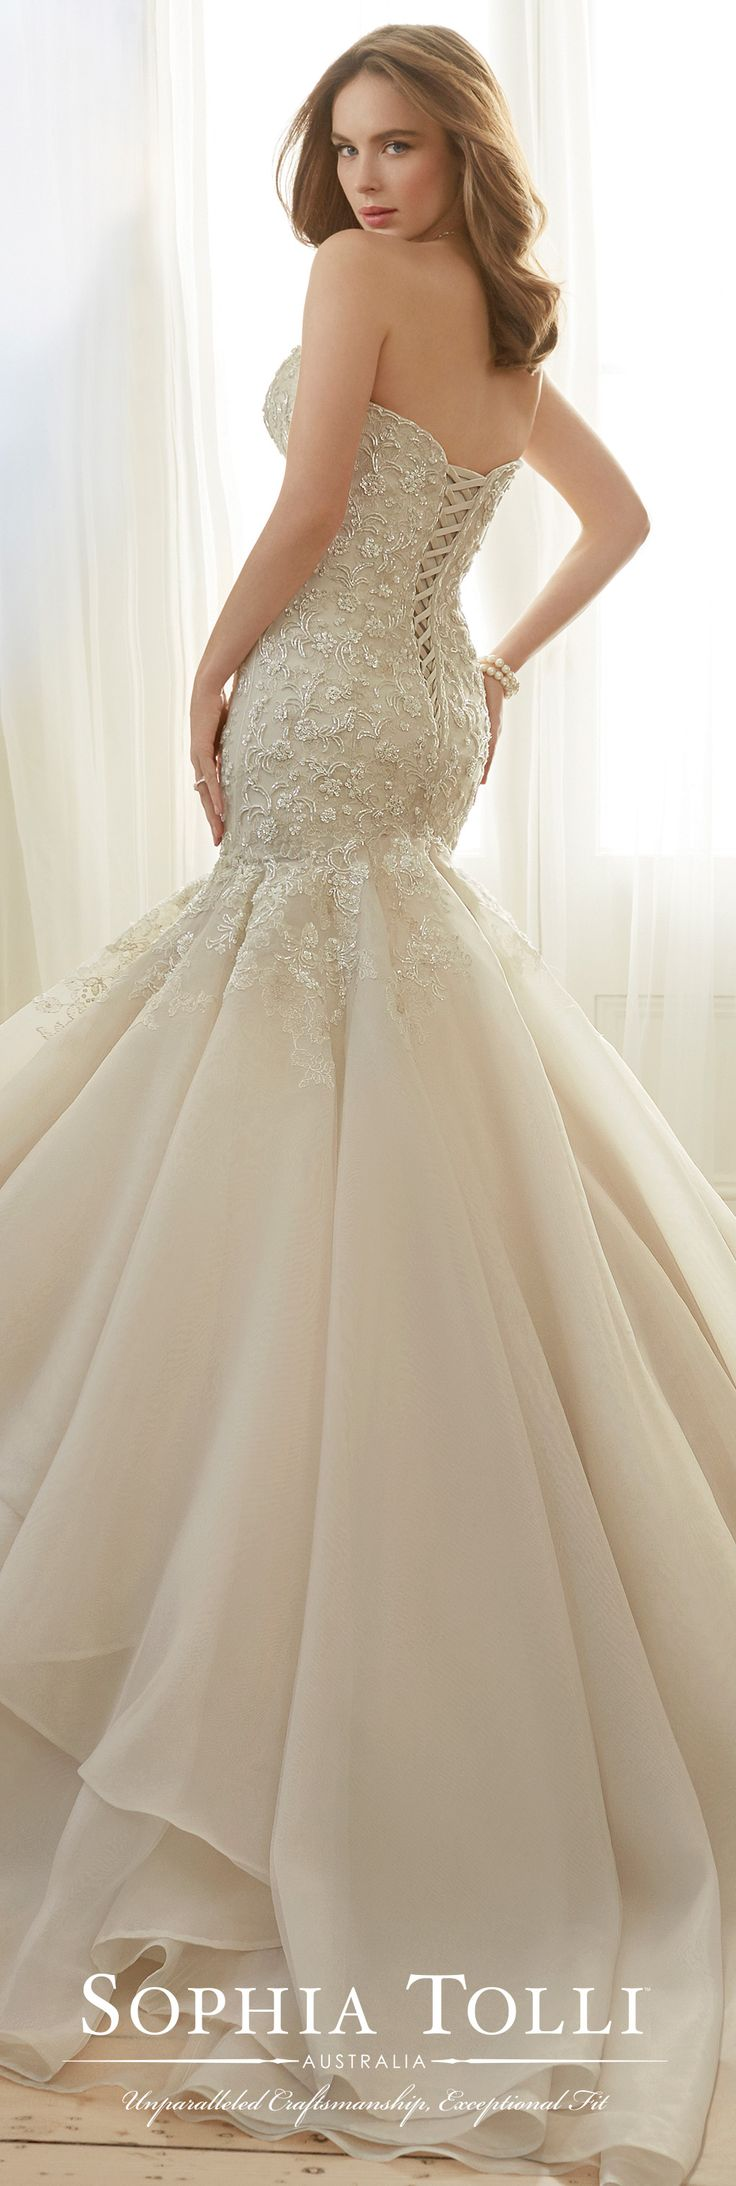 Sophia Tolli Spring 2017 Wedding Gown Collection - Style No. Y11729 Arielle - strapless beaded organza trumpet wedding dress